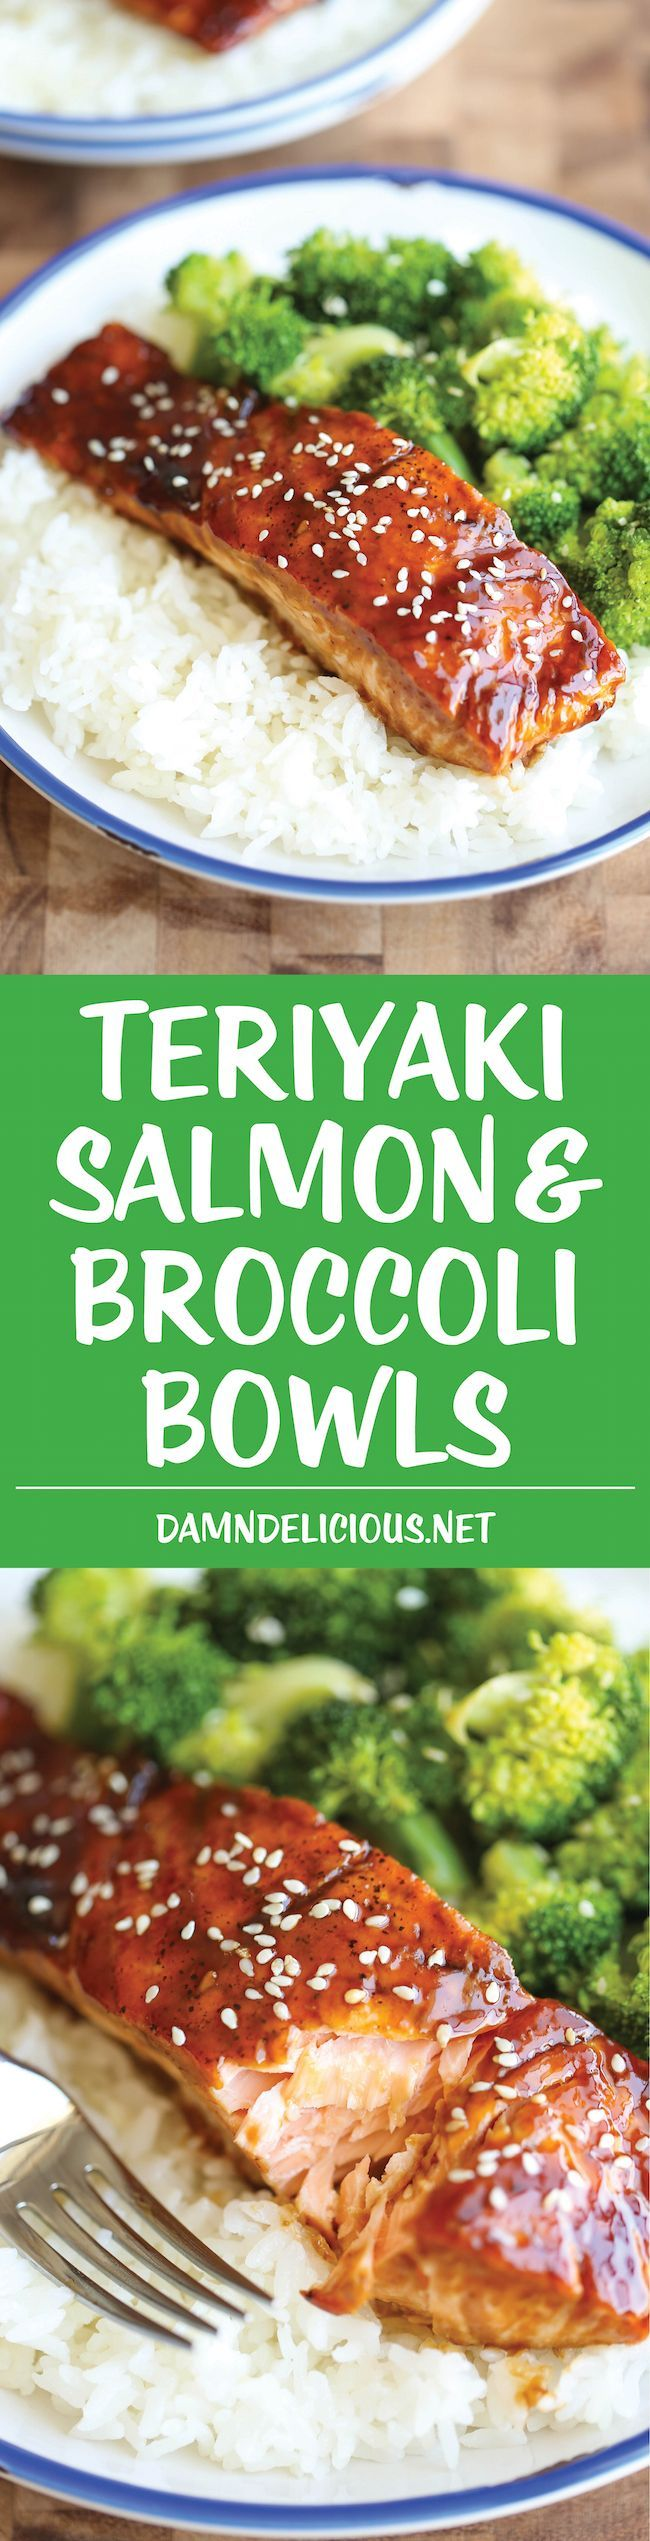 Teriyaki salmon and rice bowls.  This was delicious.